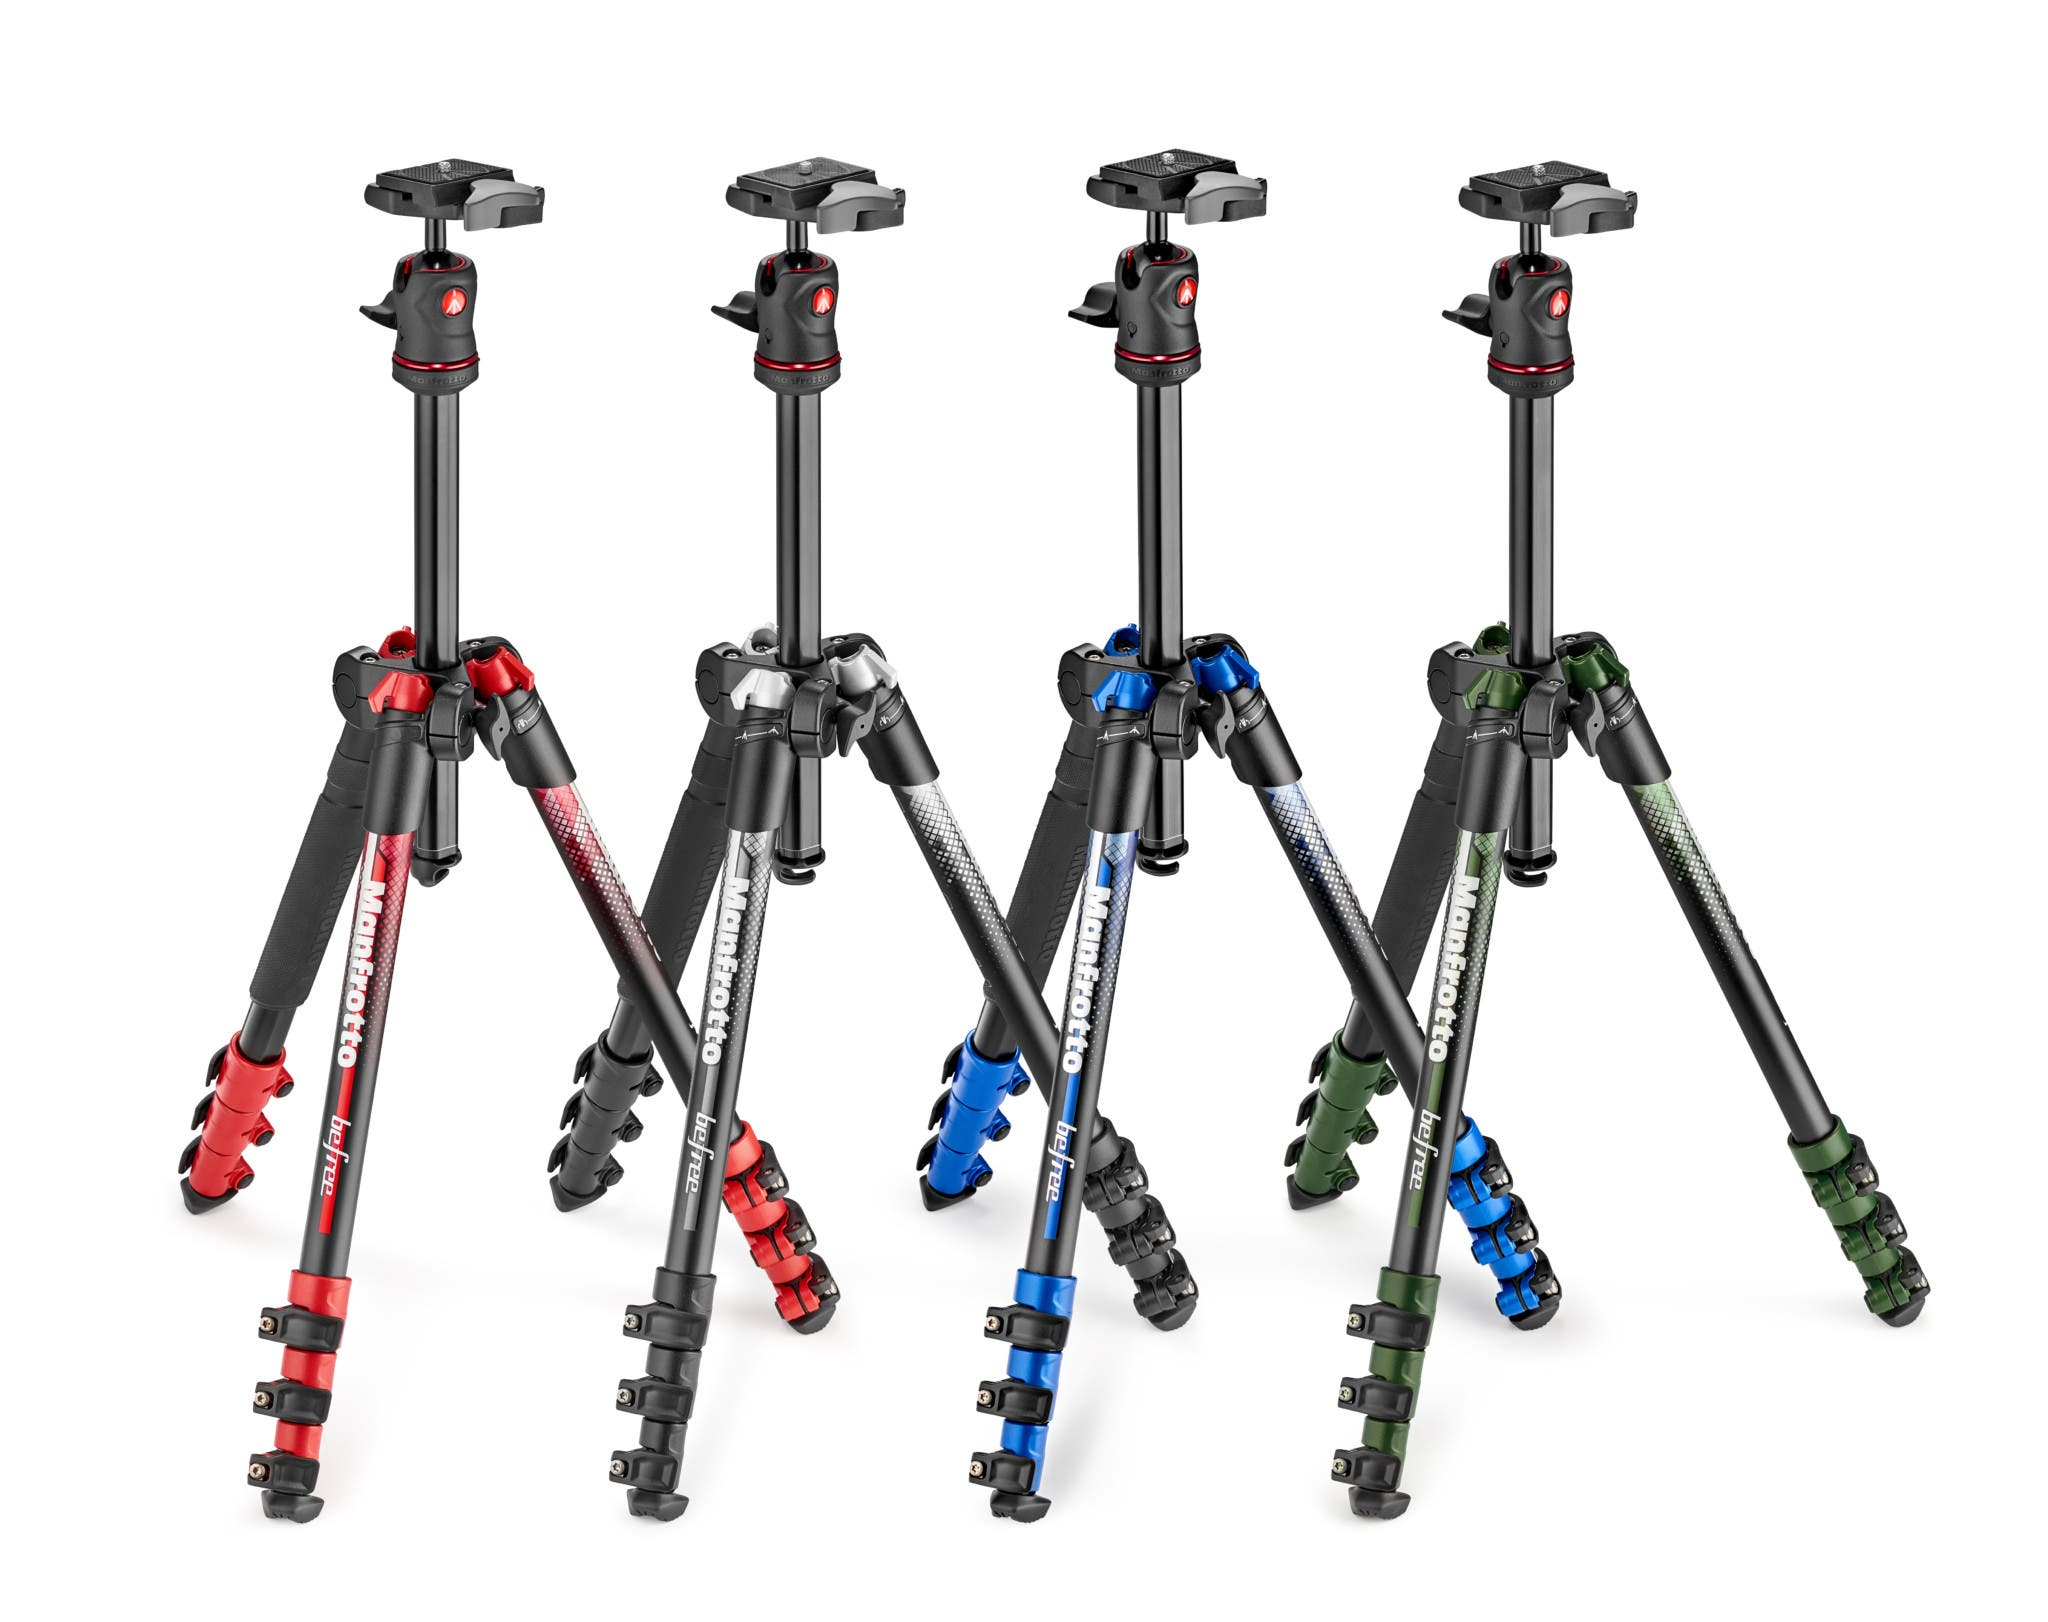 Manfrotto Introduces Four New Colors in Its Befree Tripod Line